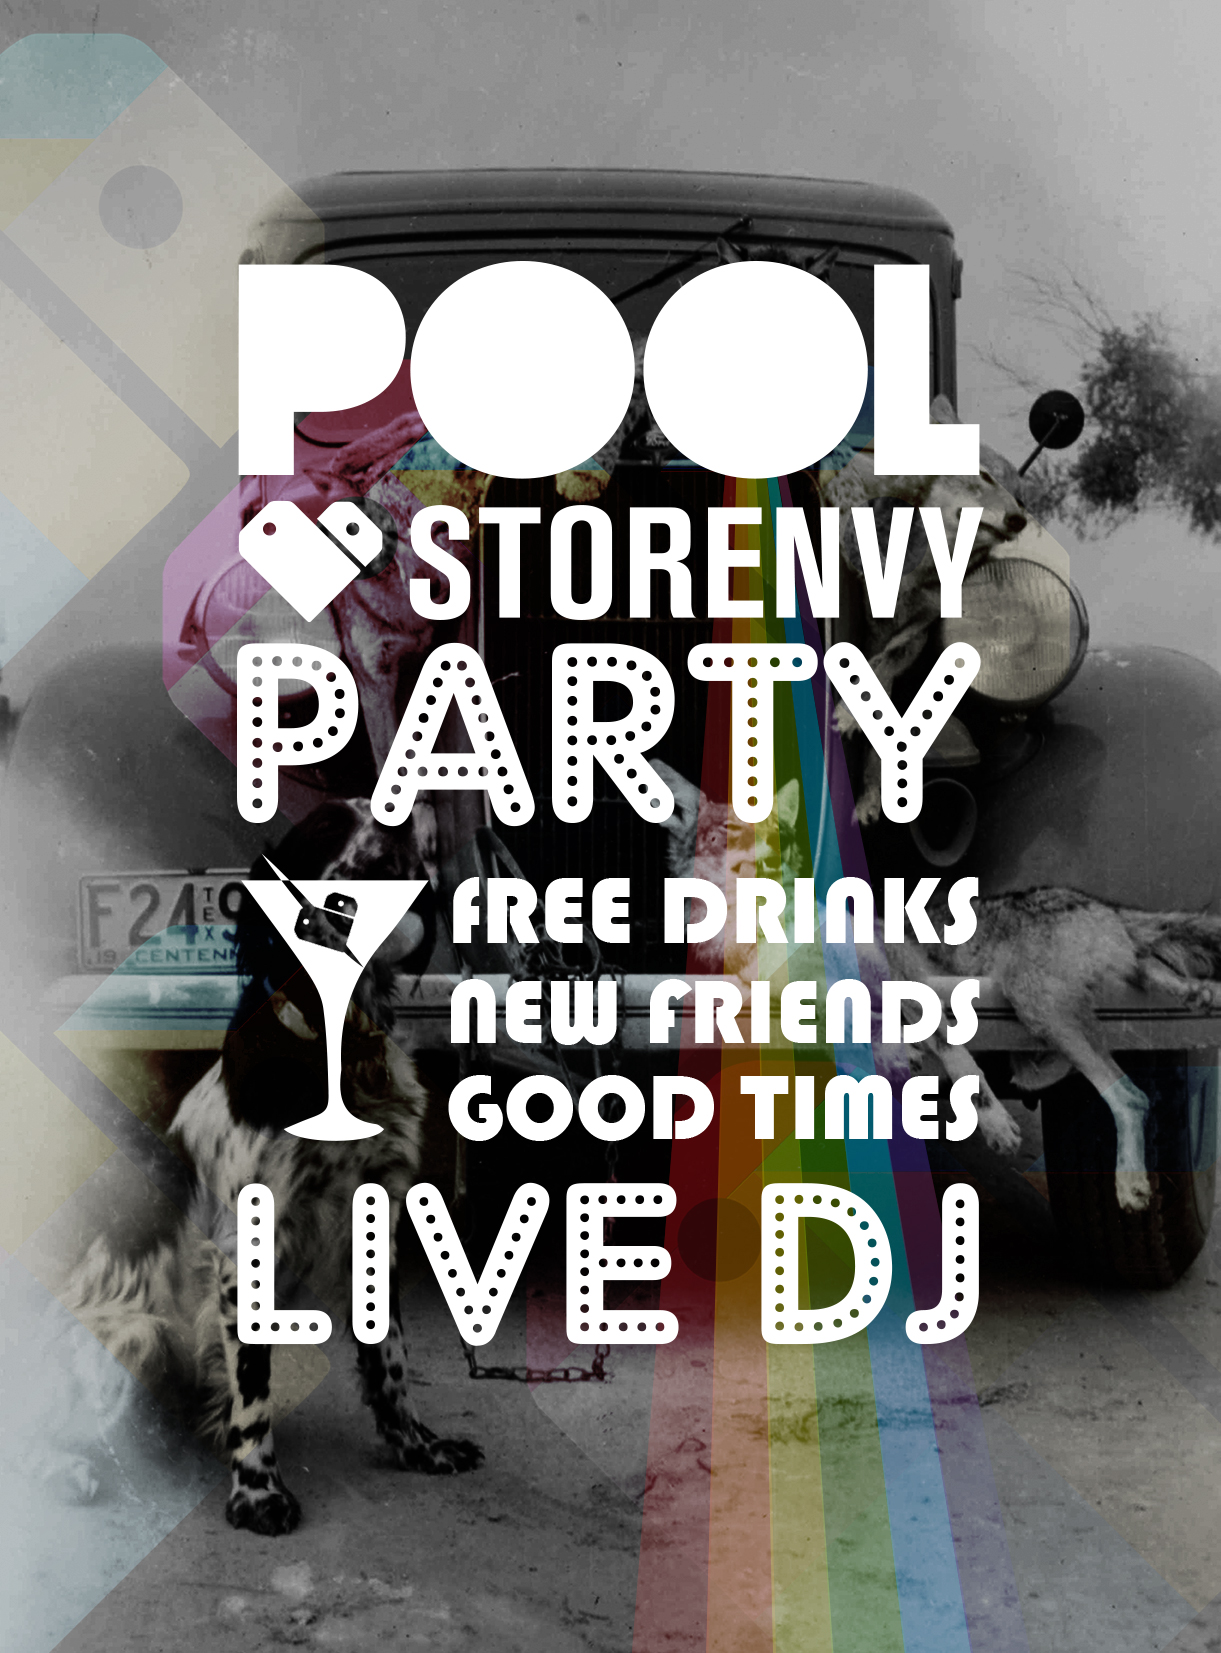 Storenvy x pool party tickets tue feb 18 2014 at 7 00 for Pool trade show las vegas